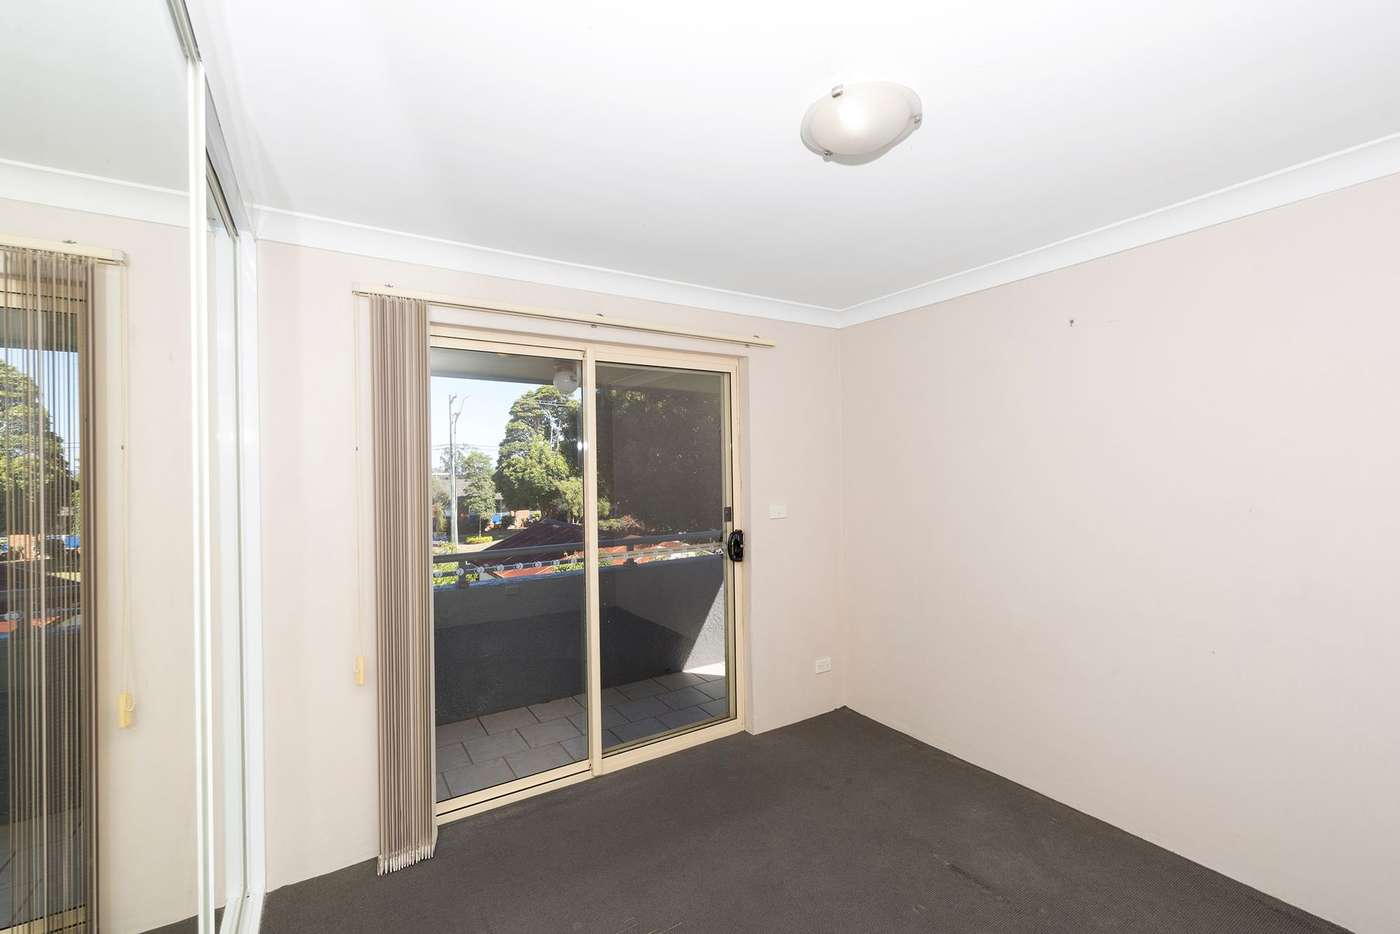 Seventh view of Homely apartment listing, 7/28 Norberta Street, The Entrance NSW 2261